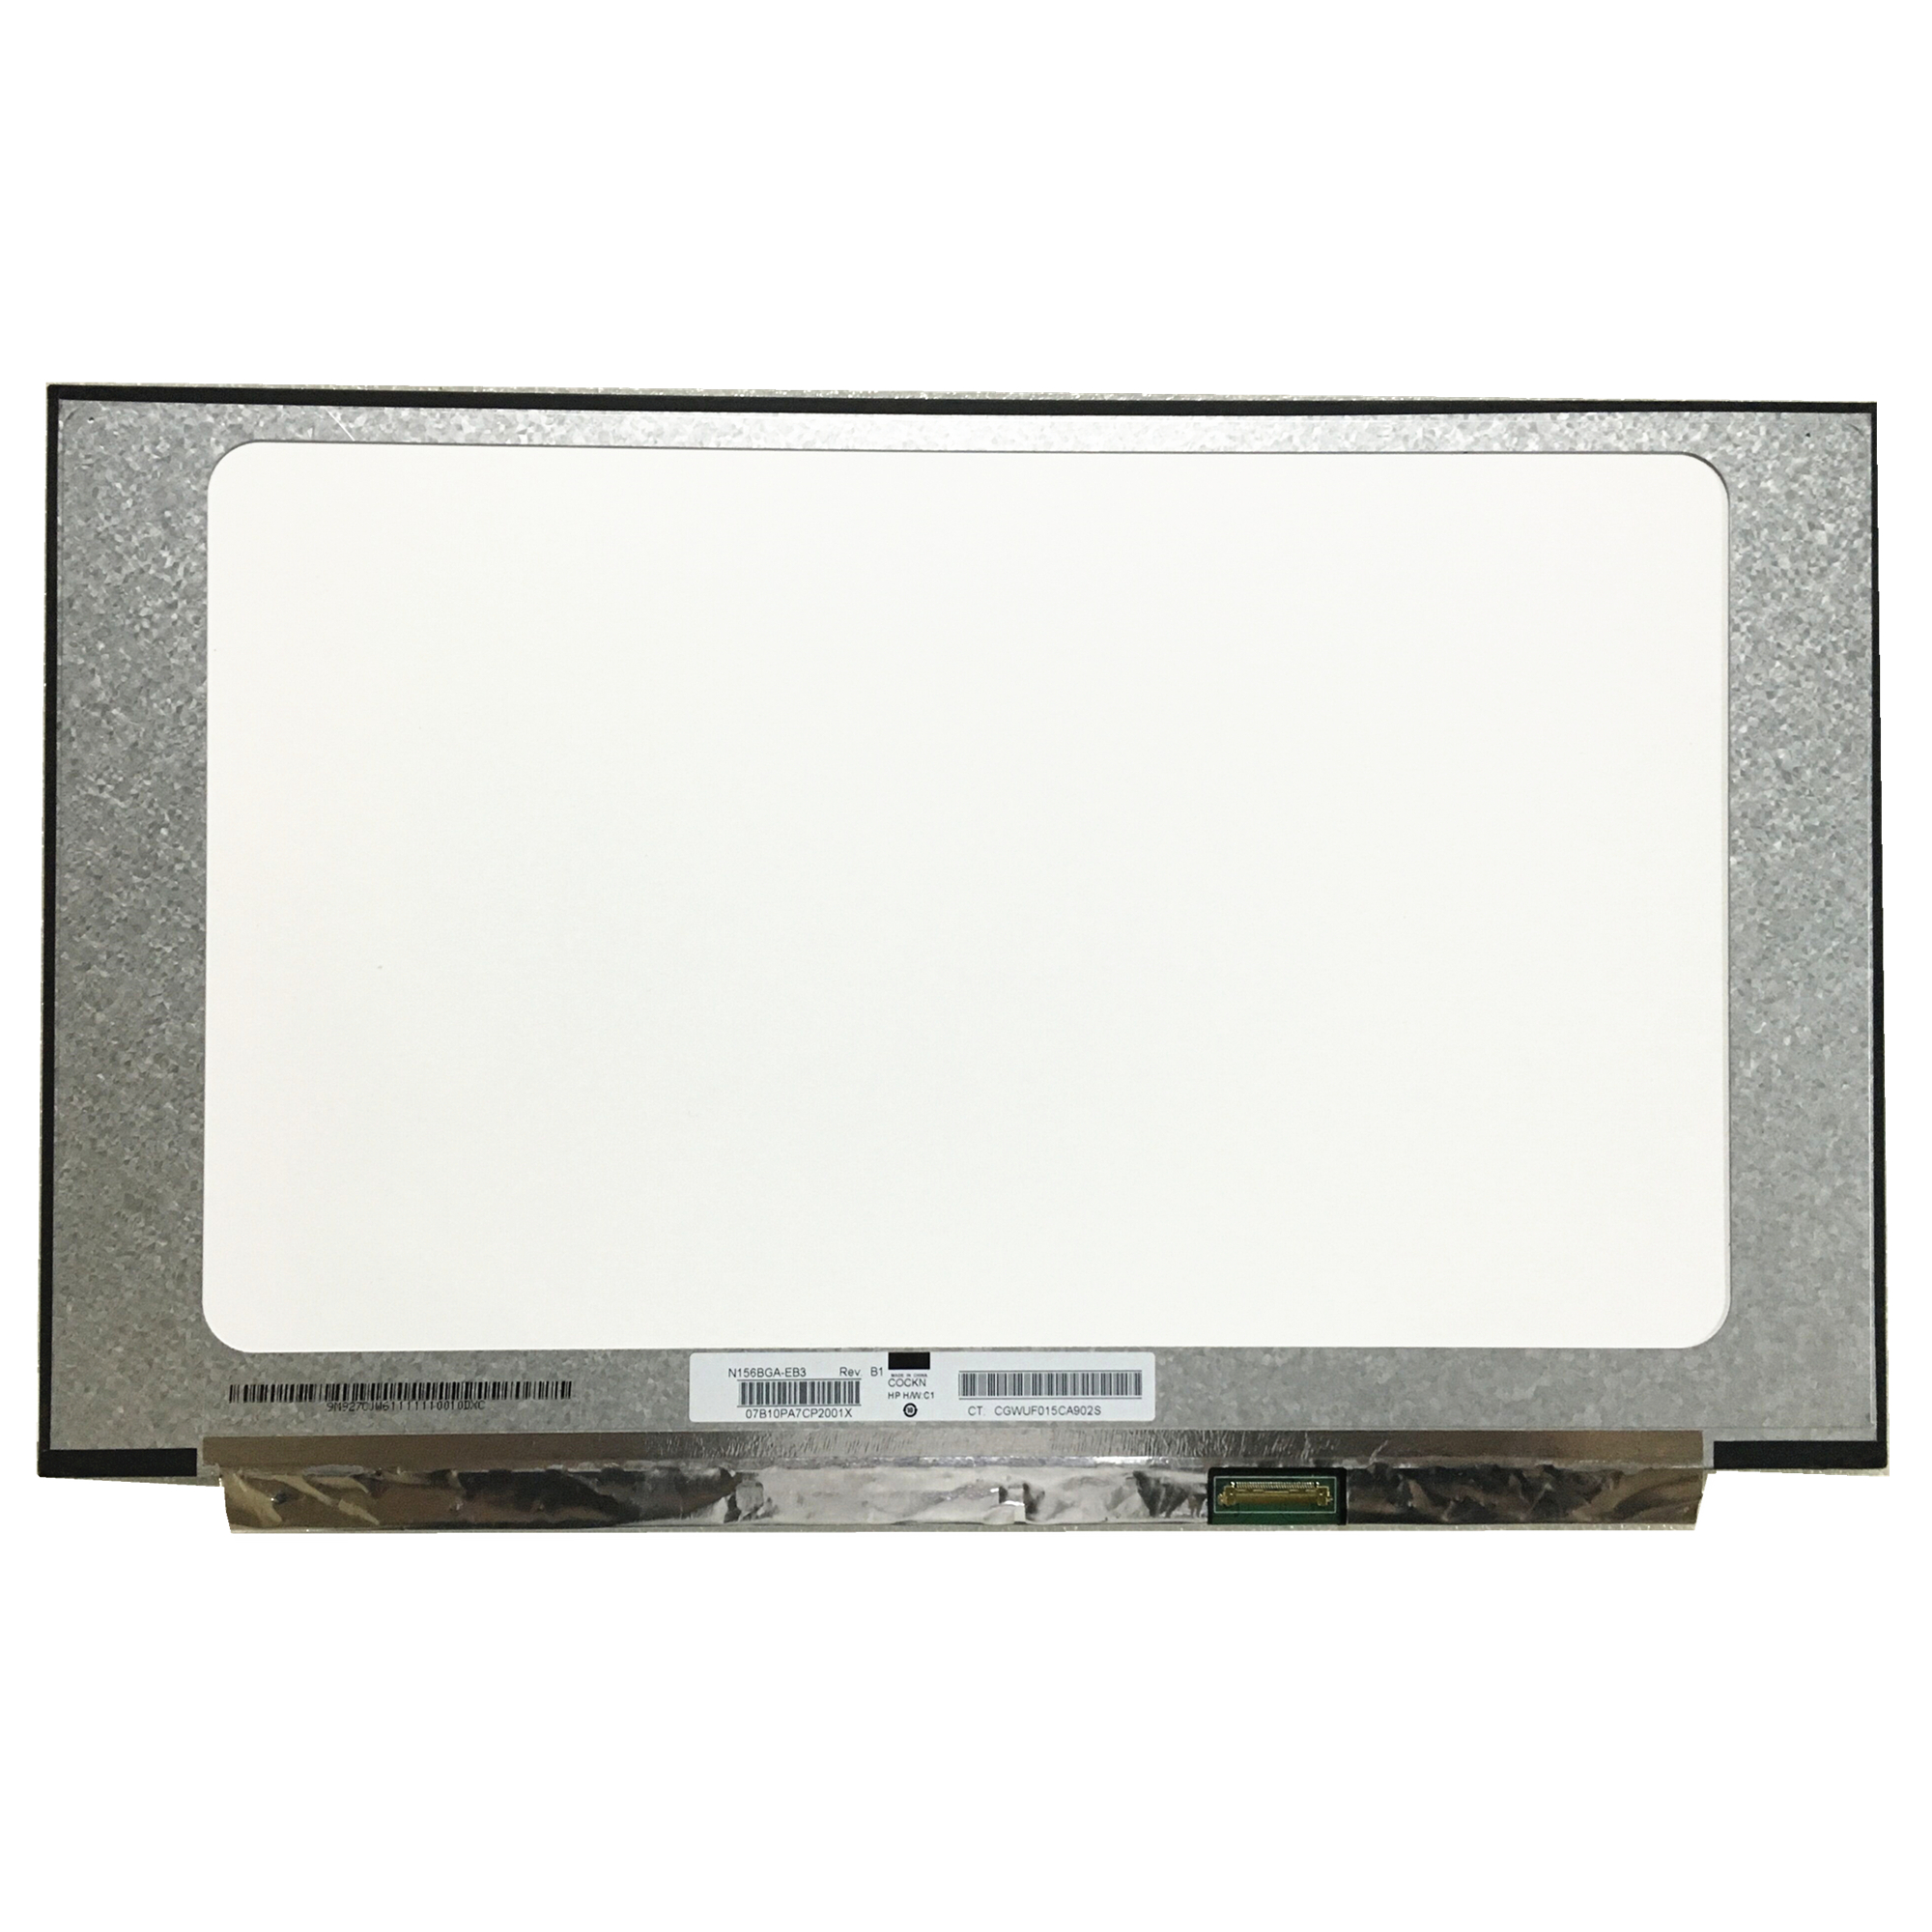 Free shipping N156BGA EB3 N156BGA EB3 15 6 inch Laptop Lcd Screen 1366 768 EDP 30